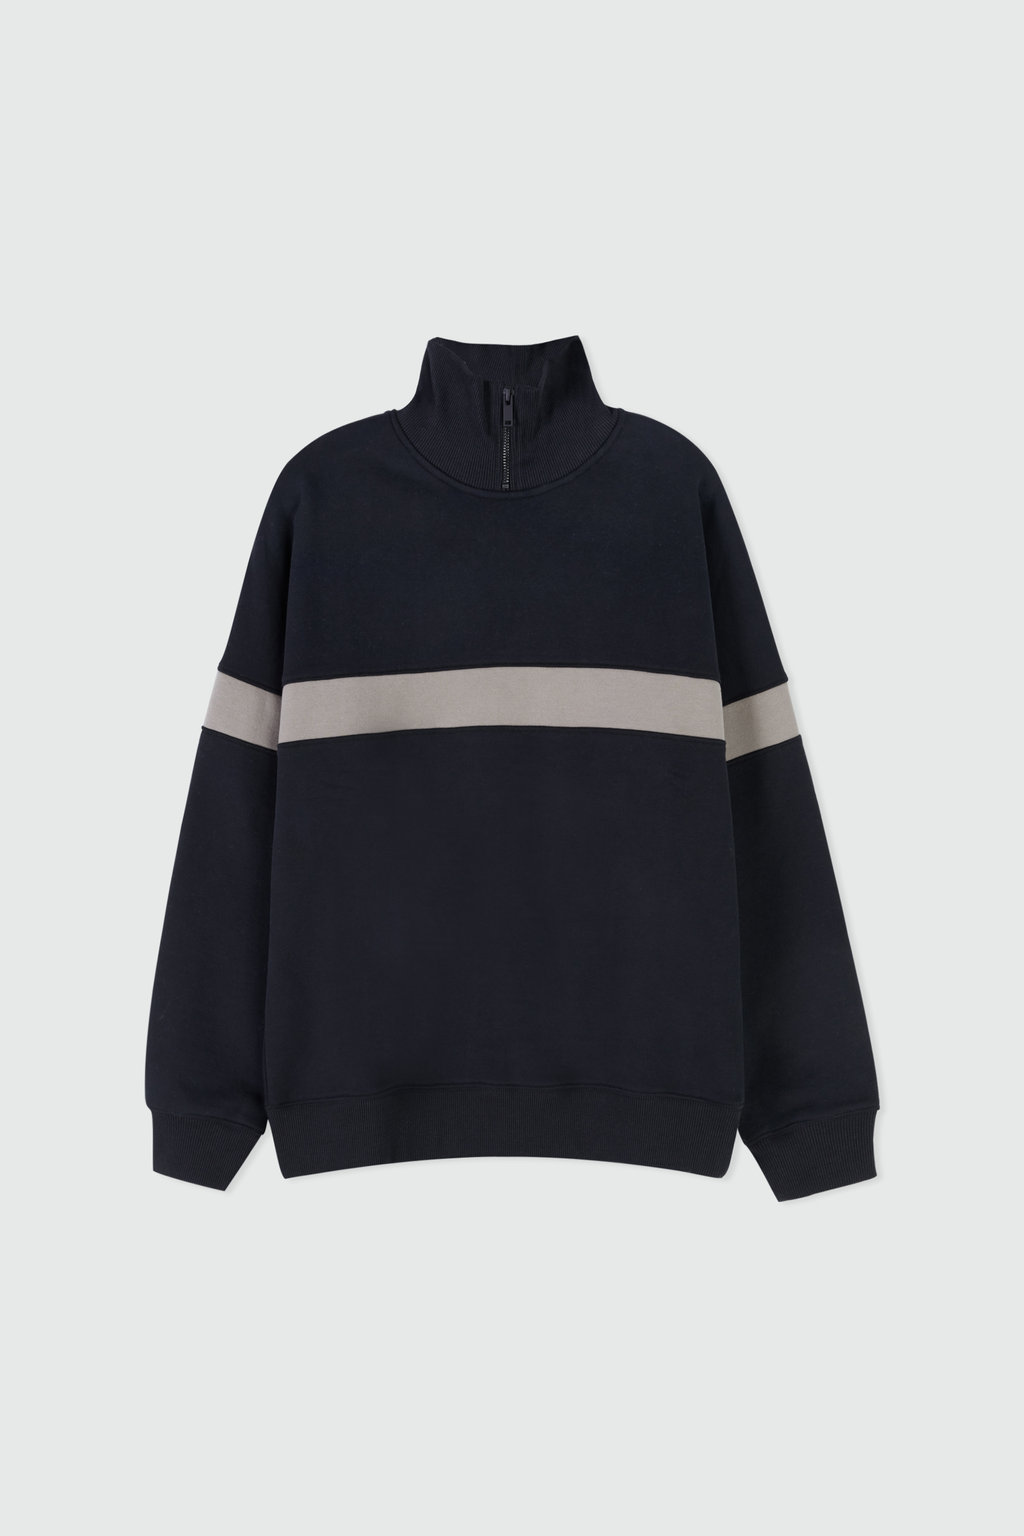 Sweatshirt 2669 Black Stripe 5